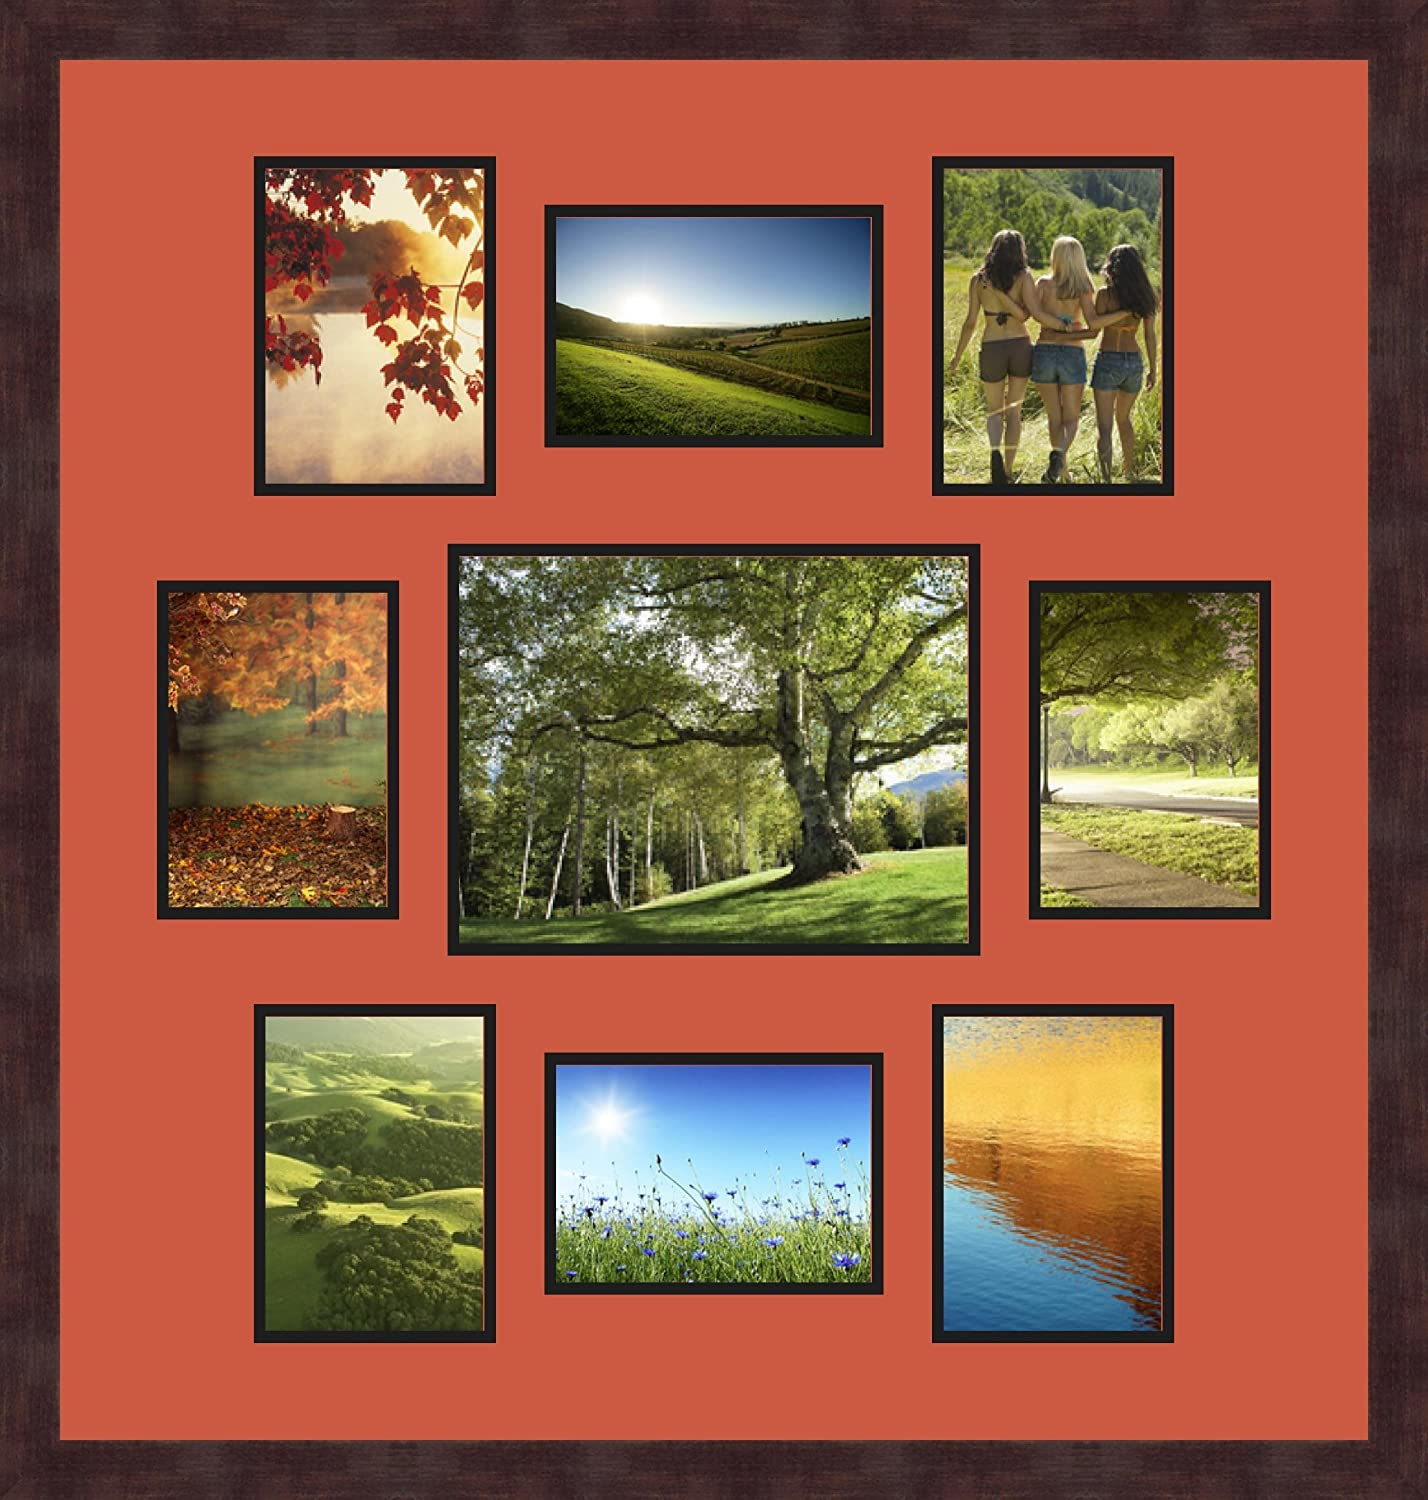 Art to Frames Double-Multimat-1114-693//89-FRBW26061 Collage Frame Photo Mat Double Mat with 8-5x7 and 1-8.5x11 Openings and Espresso Frame